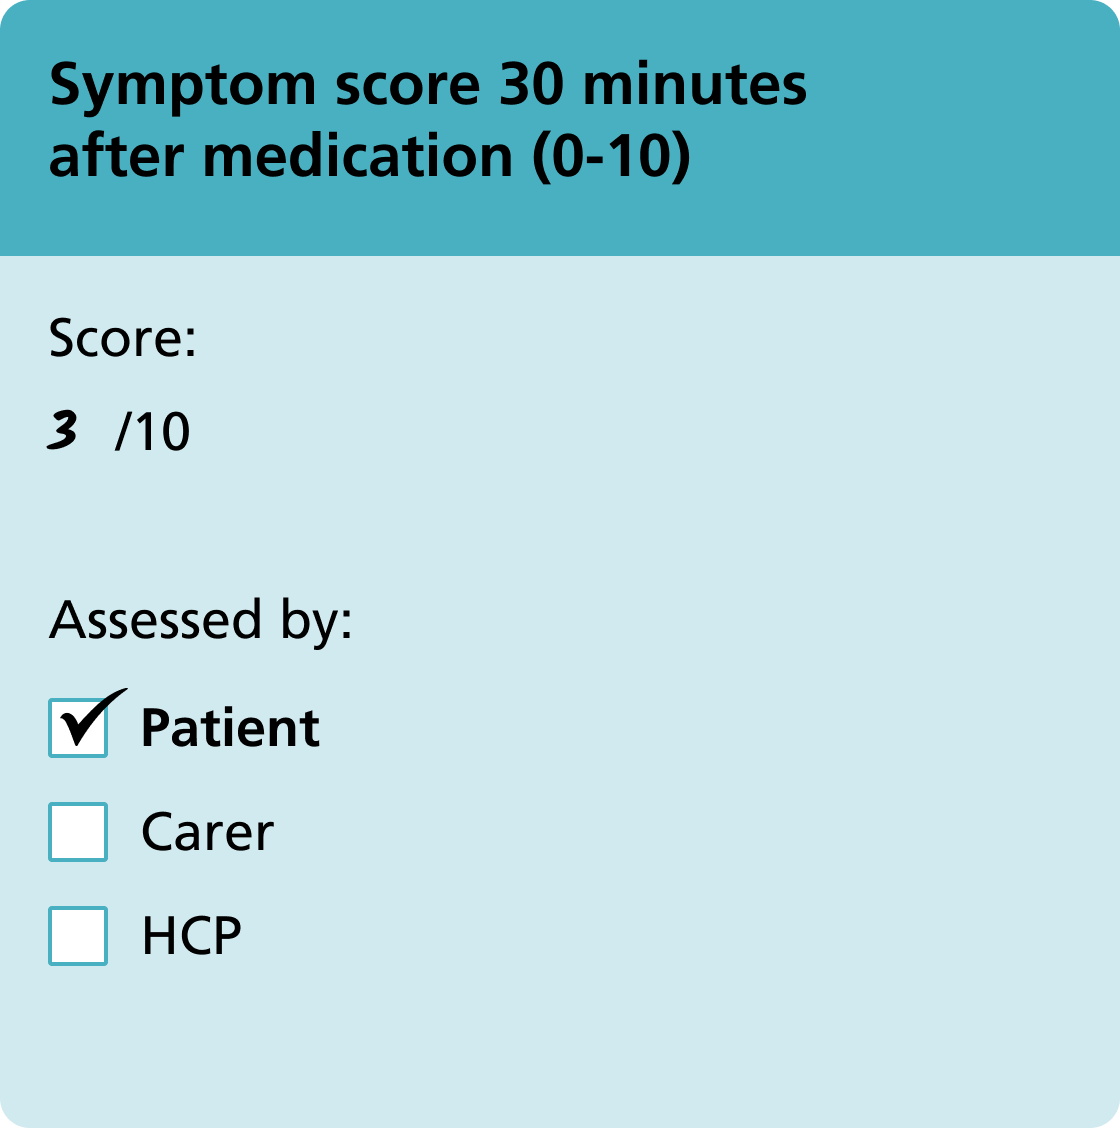 Symptom score 30 minutes after medication (0-10)